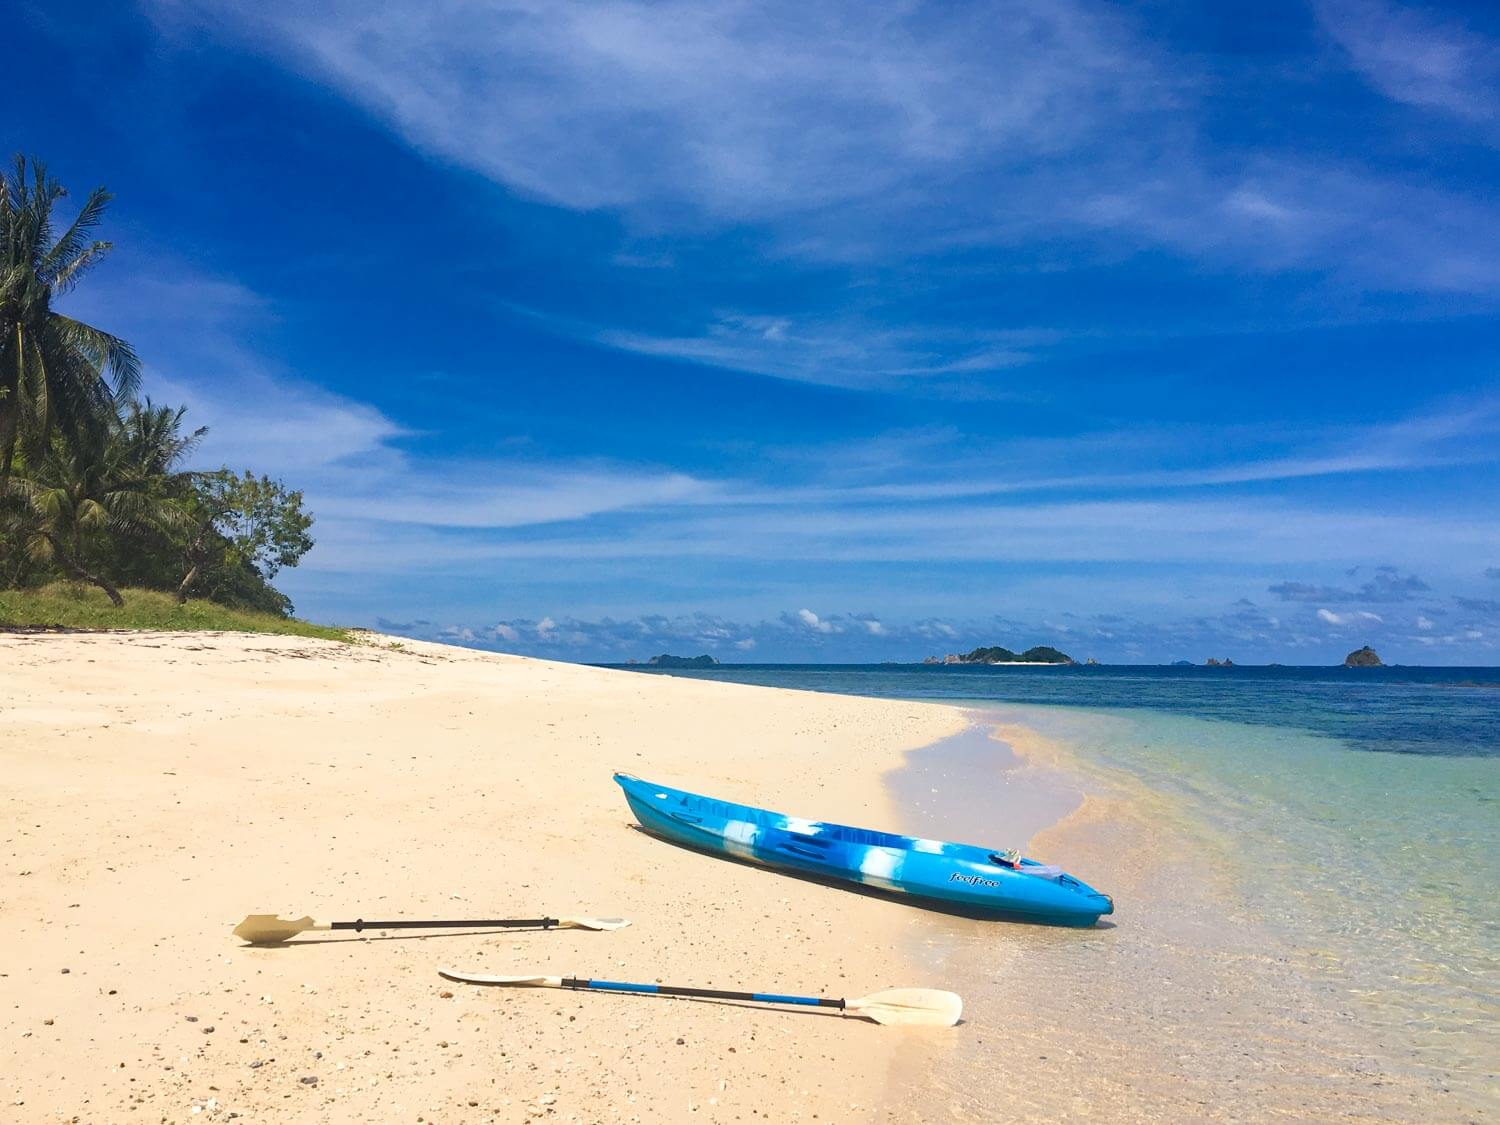 11 things to do in coron palawan for unique adventures